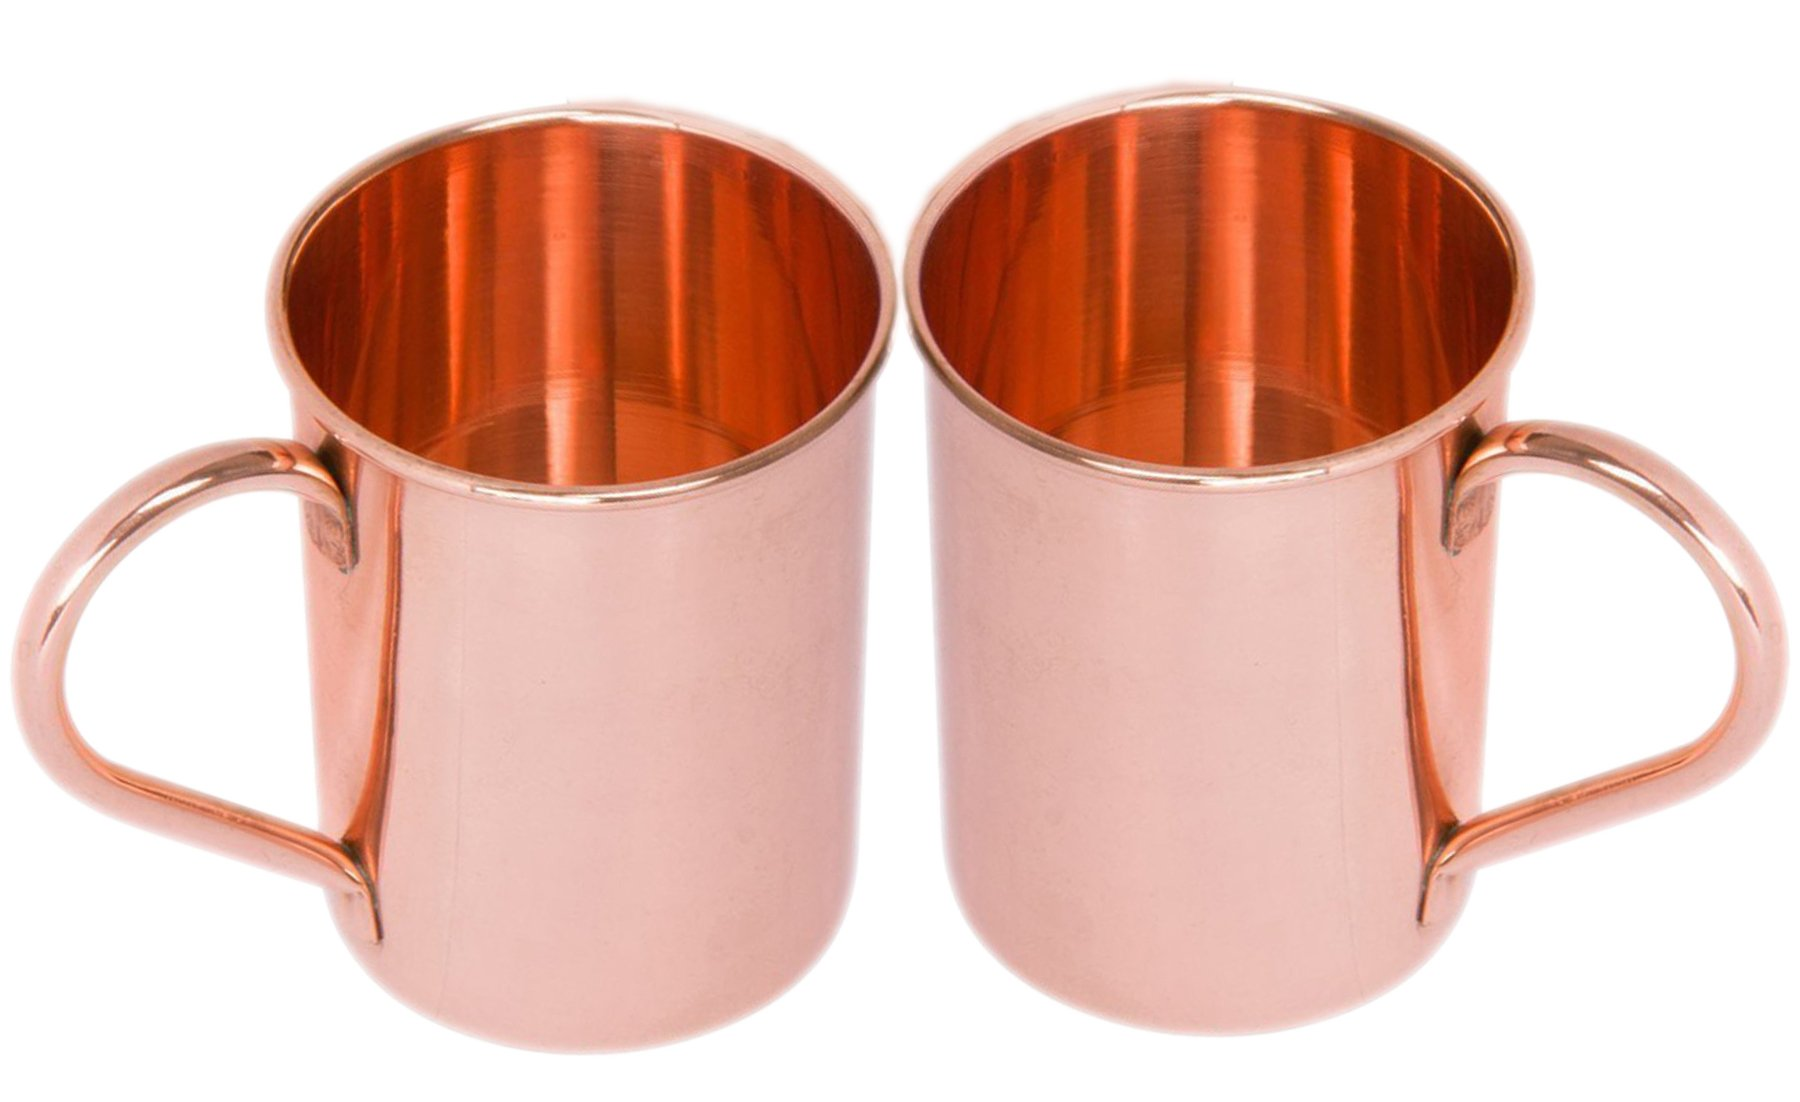 Classic Solid Copper Moscow Mule Mugs Pure Solid Copper No Lining Smooth Finish 16 oz Copper Mug Set of 2